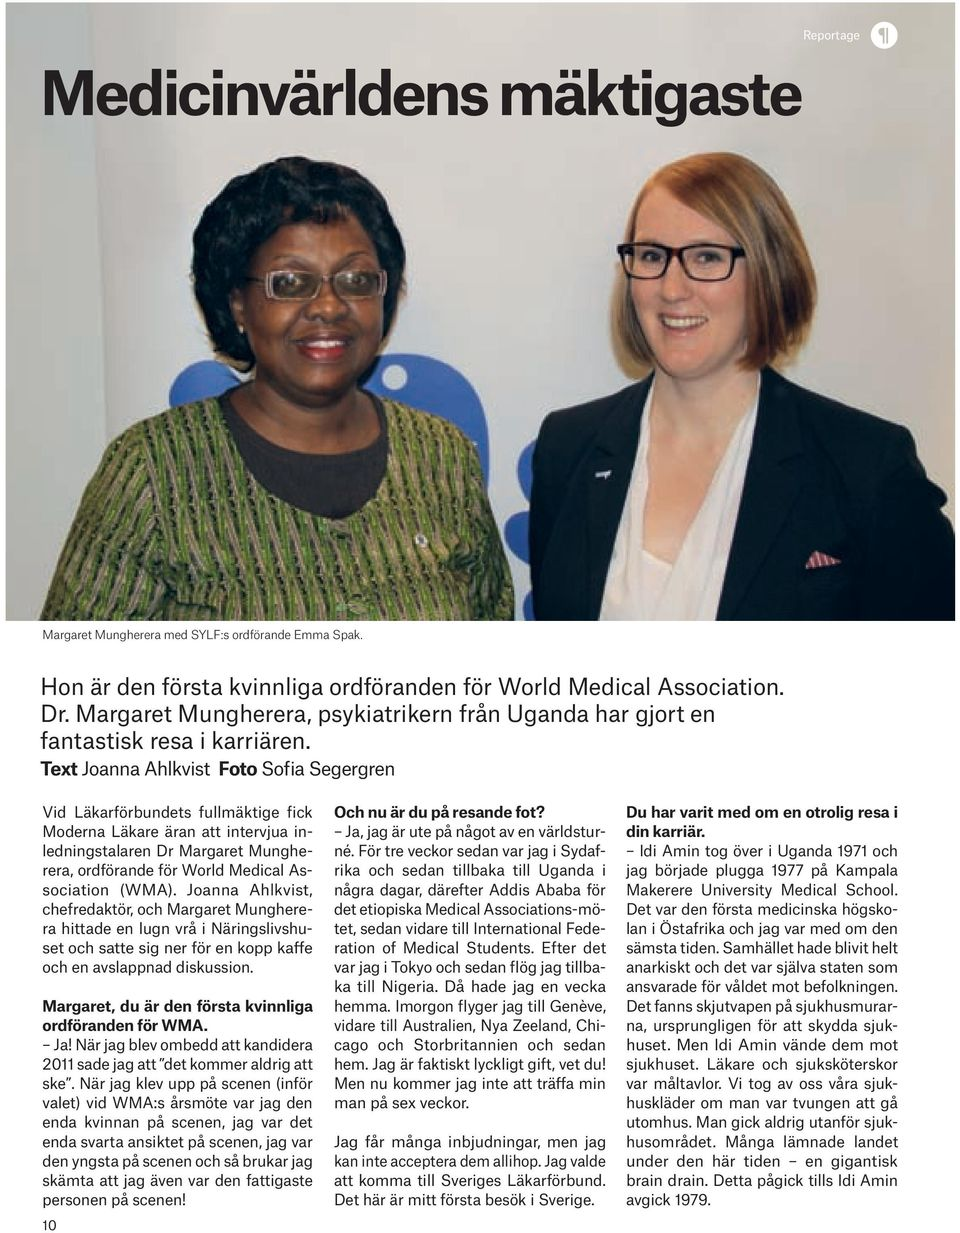 Text Joanna Ahlkvist Foto Sofia Segergren Vid Läkarförbundets fullmäktige fick Moderna Läkare äran att intervjua inledningstalaren Dr Margaret Mungherera, ordförande för World Medical Association